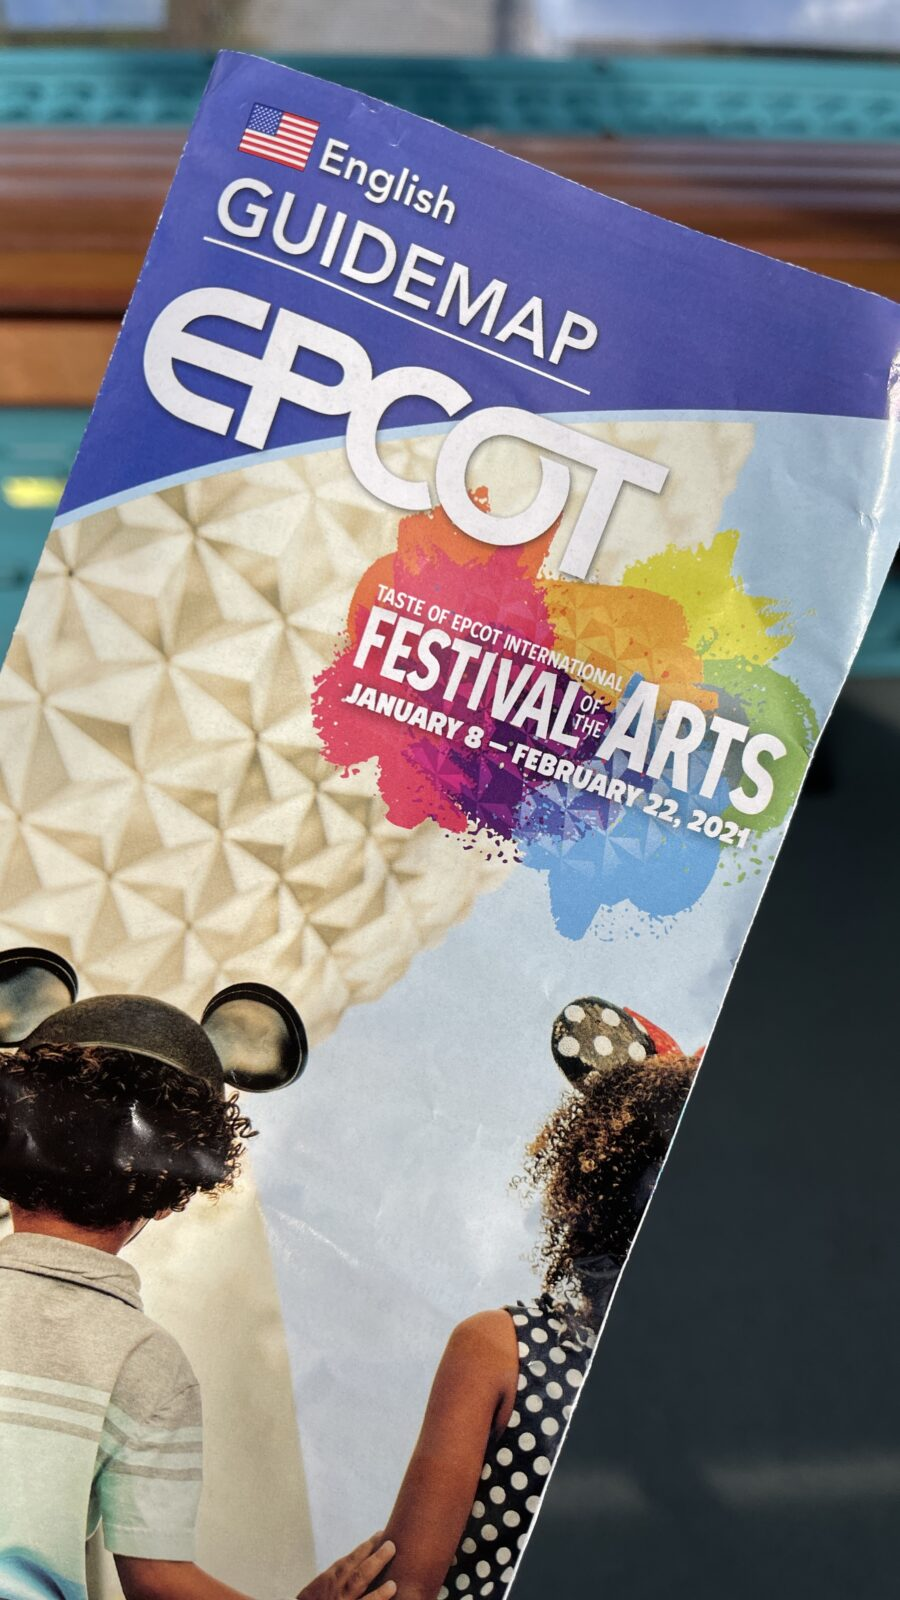 2021 Epcot Festival of the Arts - Mural